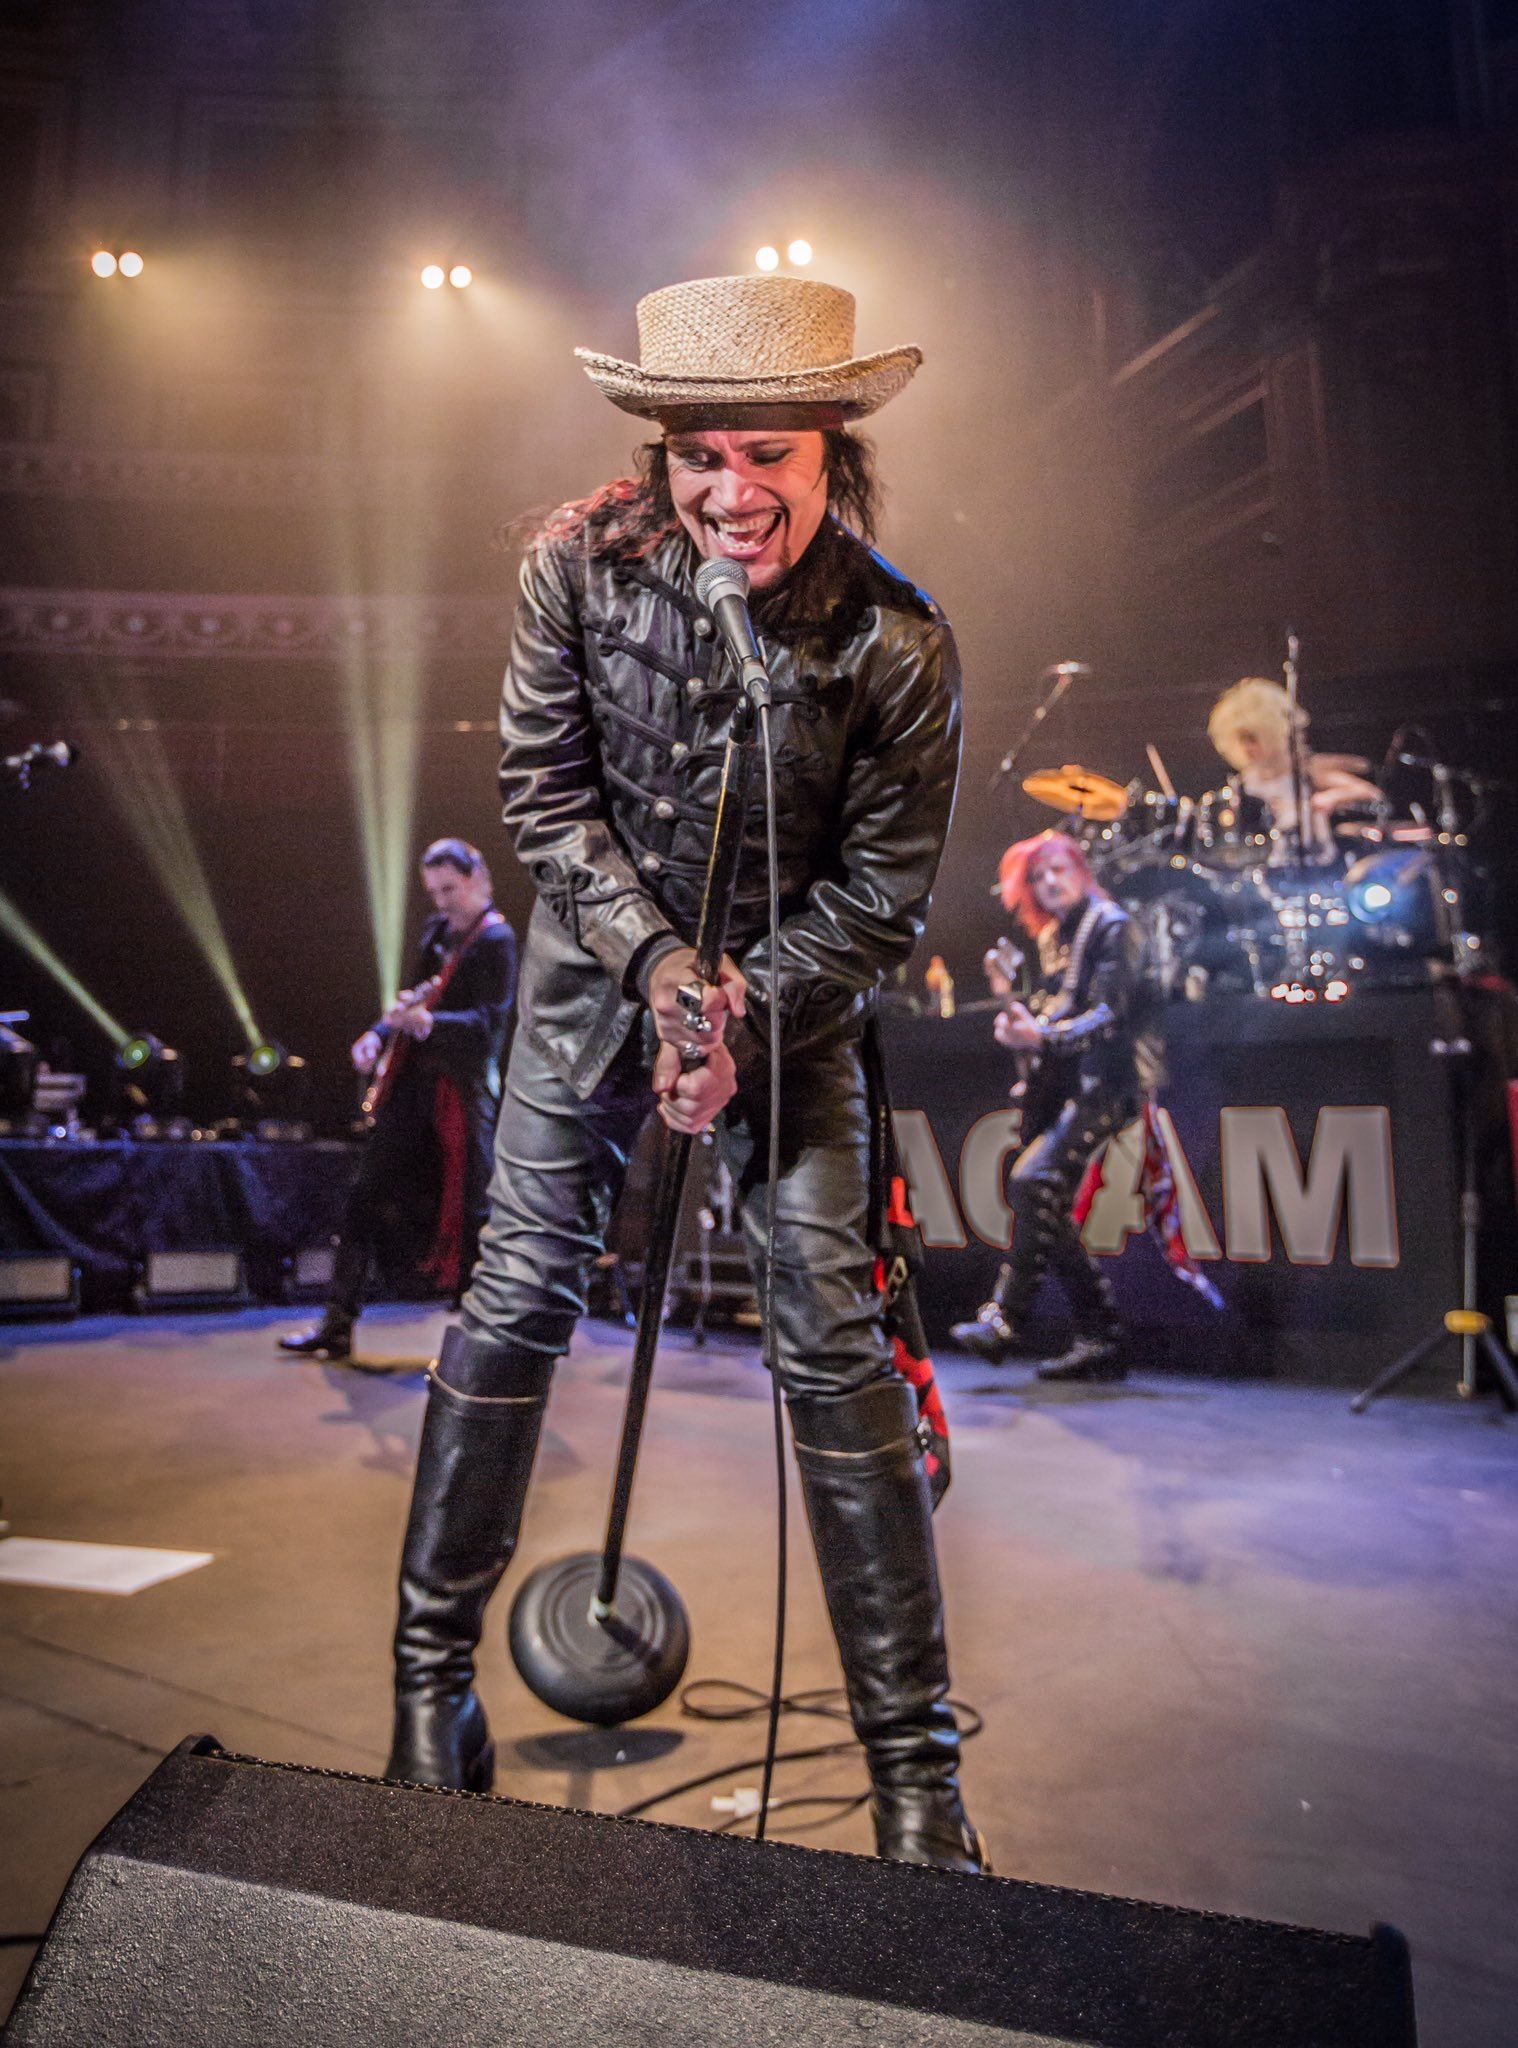 Adam Ant at the Royal Albert Hall, 17 May 2017 © Iain Reid, Beanotown Photography.